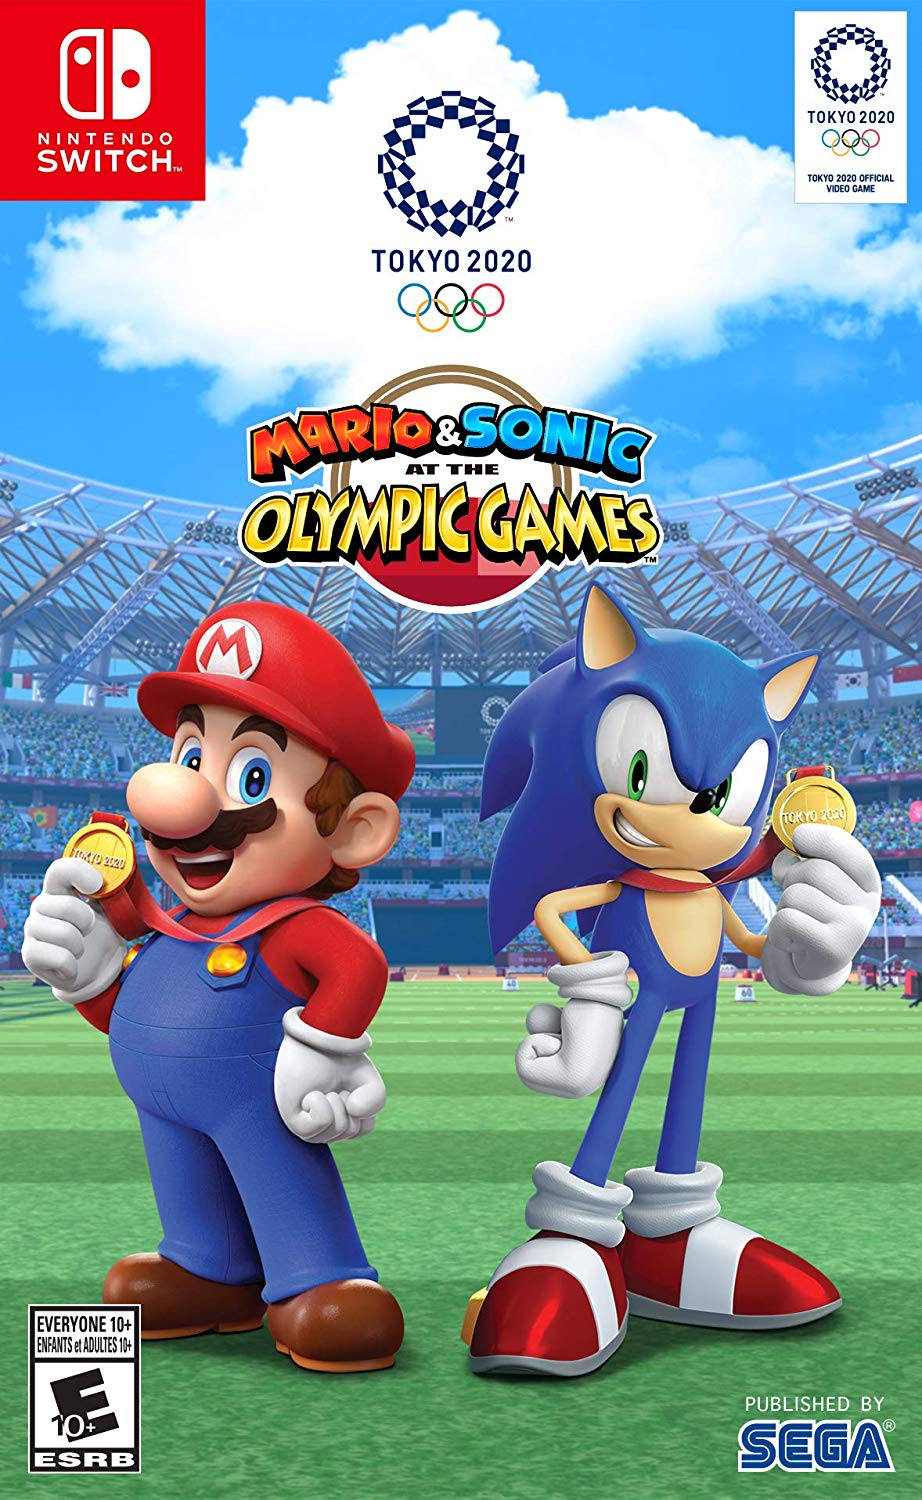 Mario Sonic At The Olympic Games Tokyo 2020 Sega Nintendo Switch 010086770094 Walmart Com In 2020 Nintendo Switch Games Olympic Games Mario